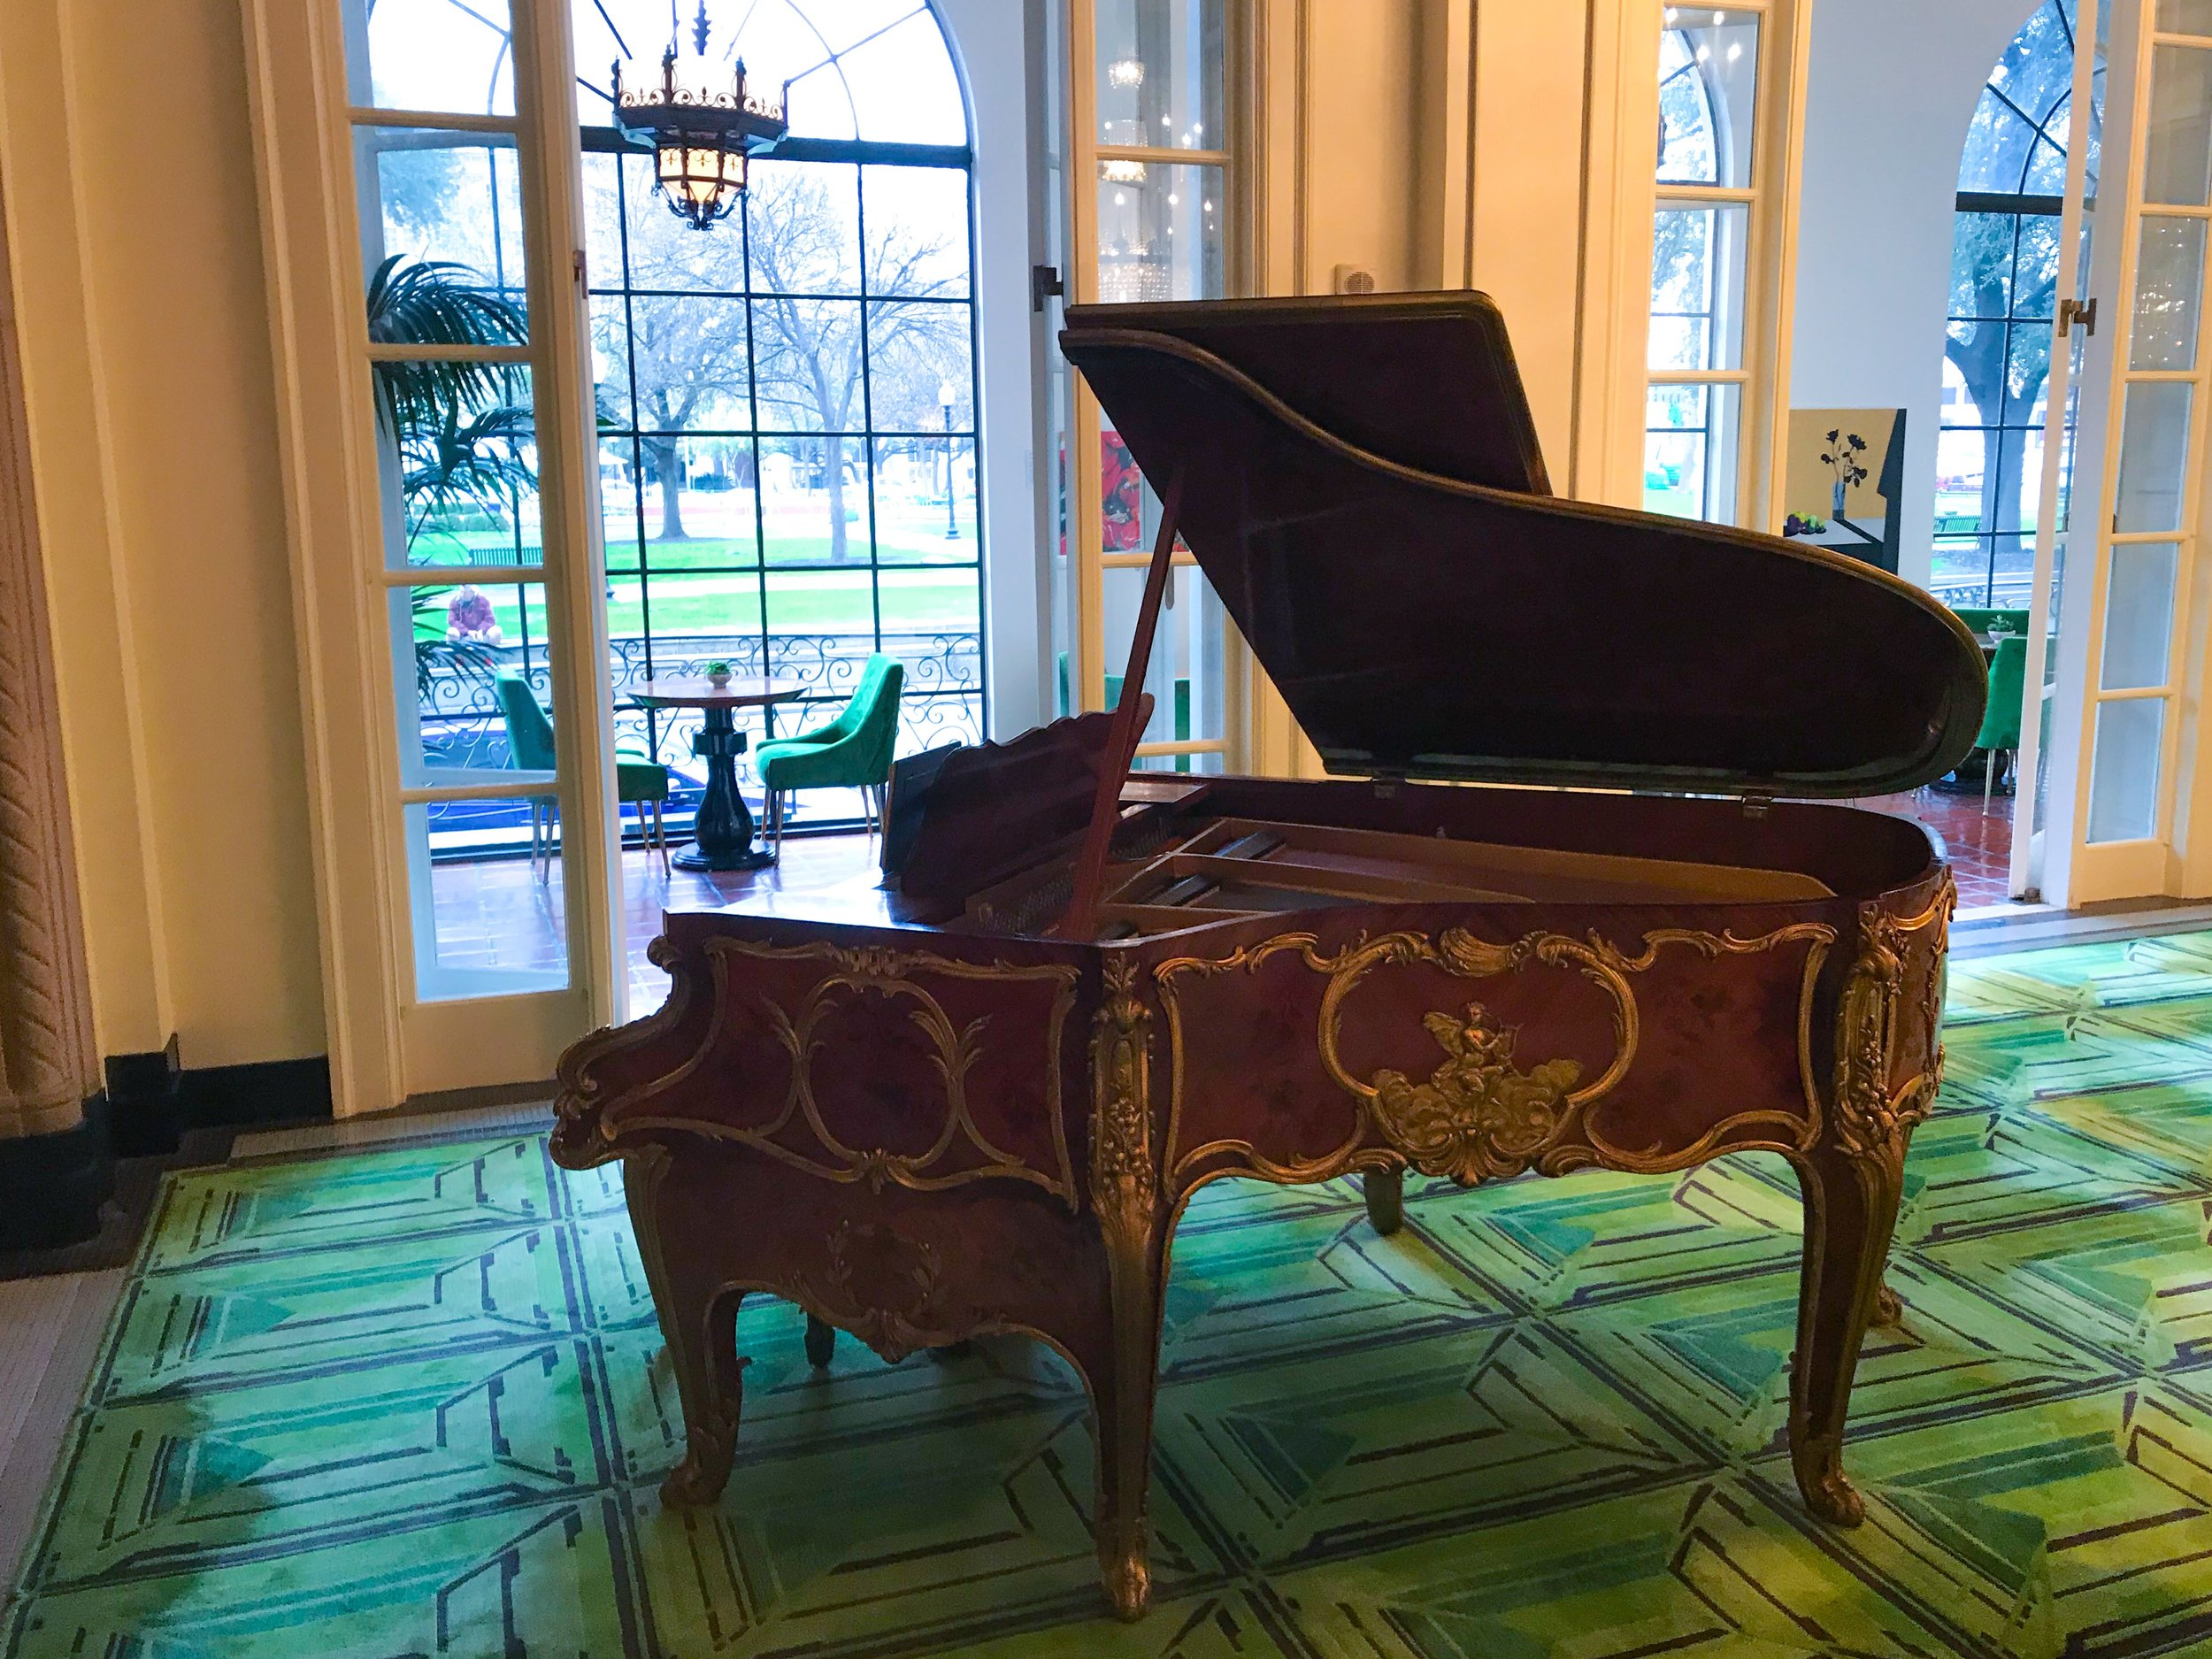 A grand piano in the lobby.